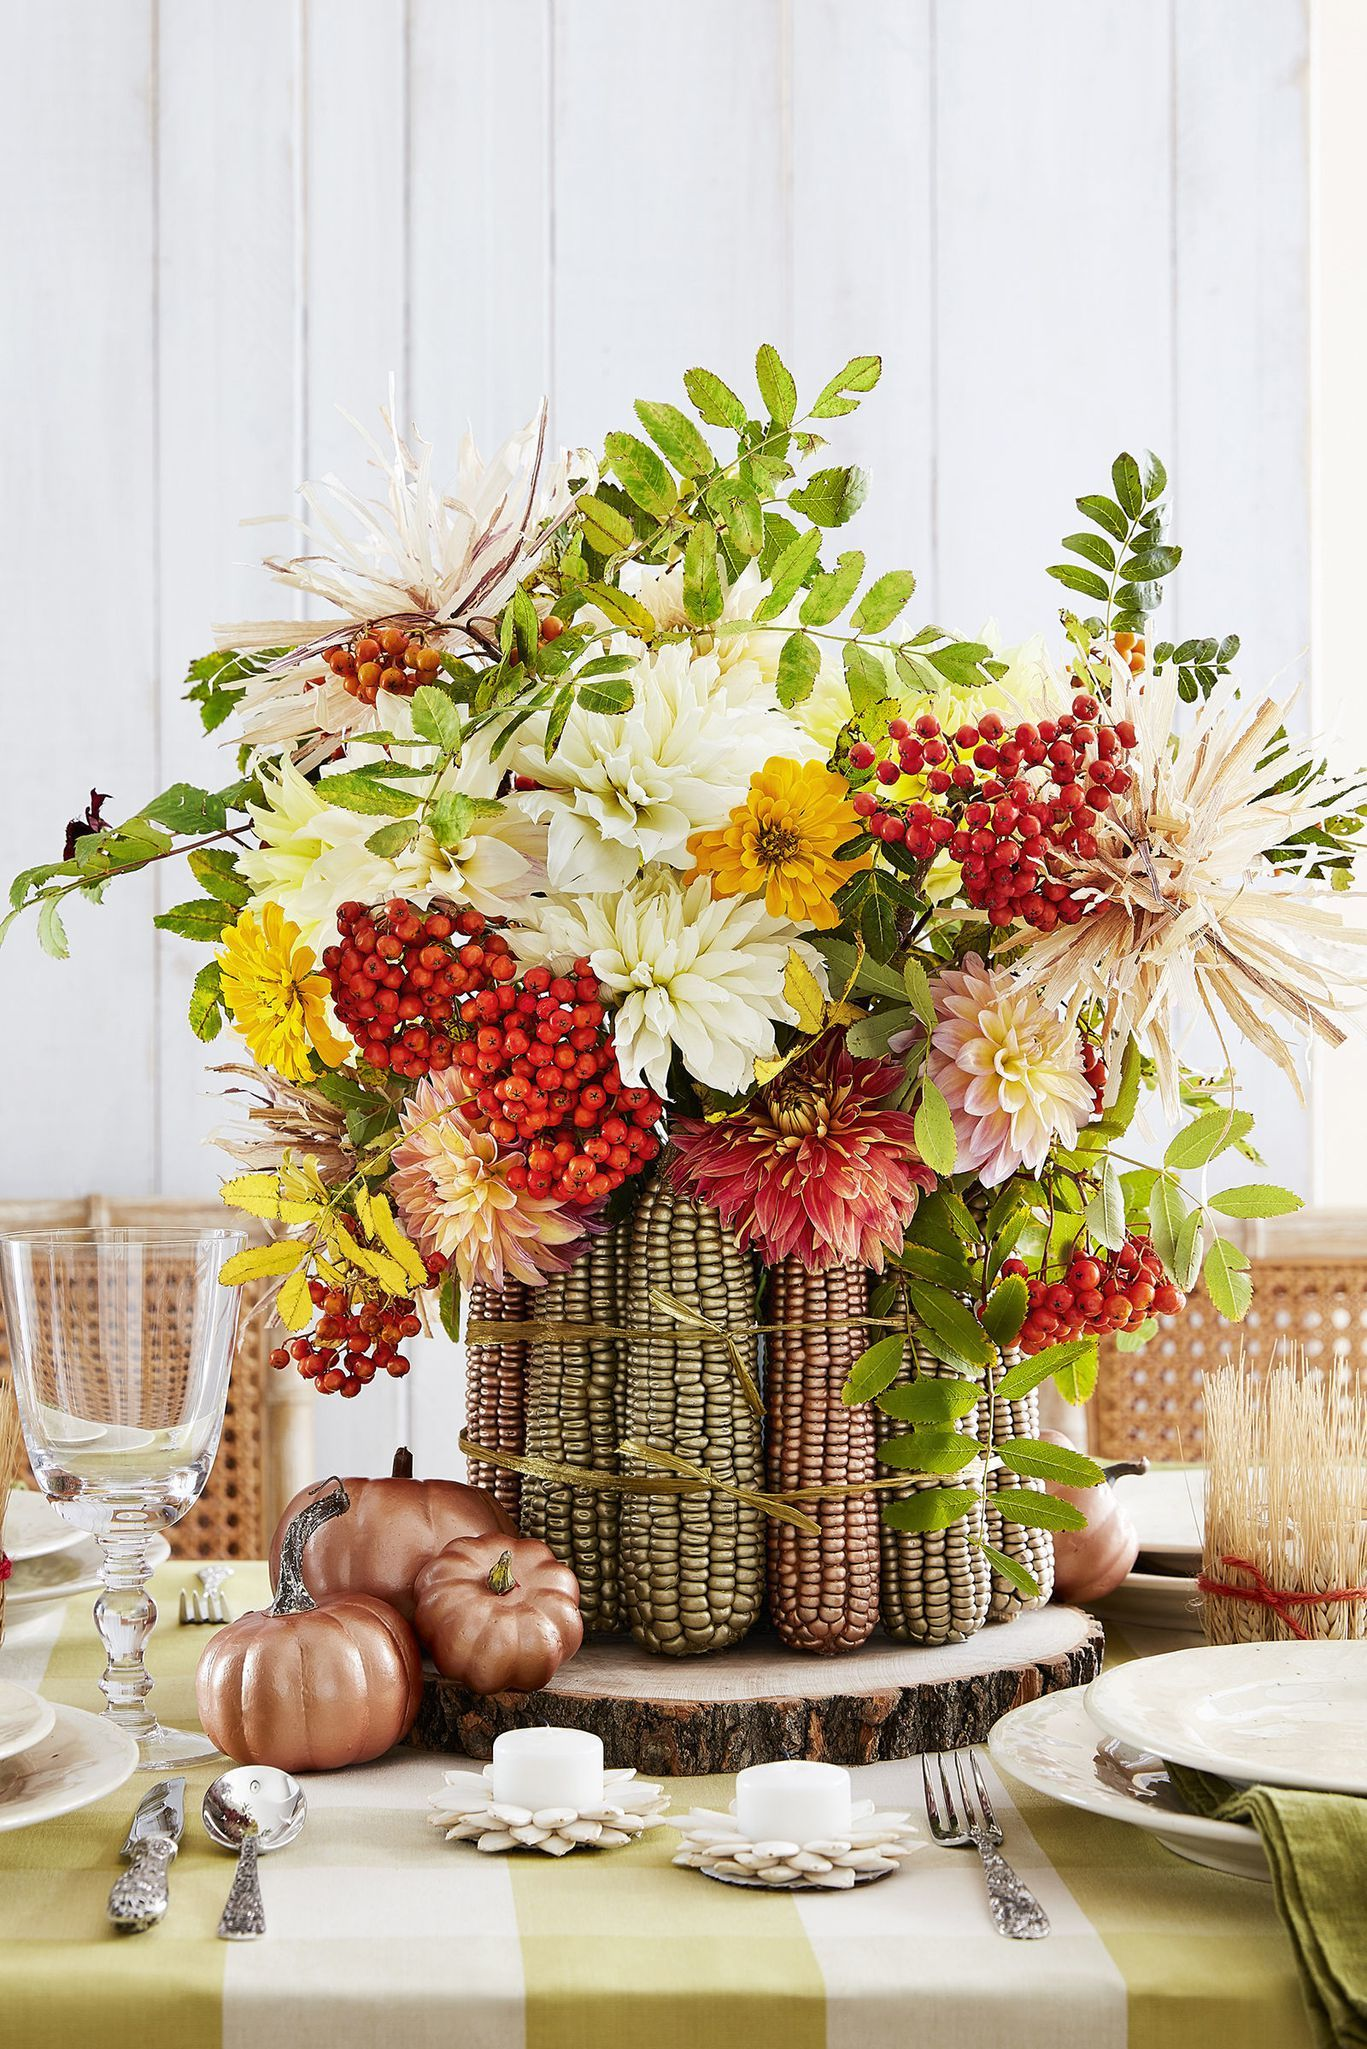 51 DIY Fall Centerpieces That Go Way Beyond Pumpkins and Gourds images